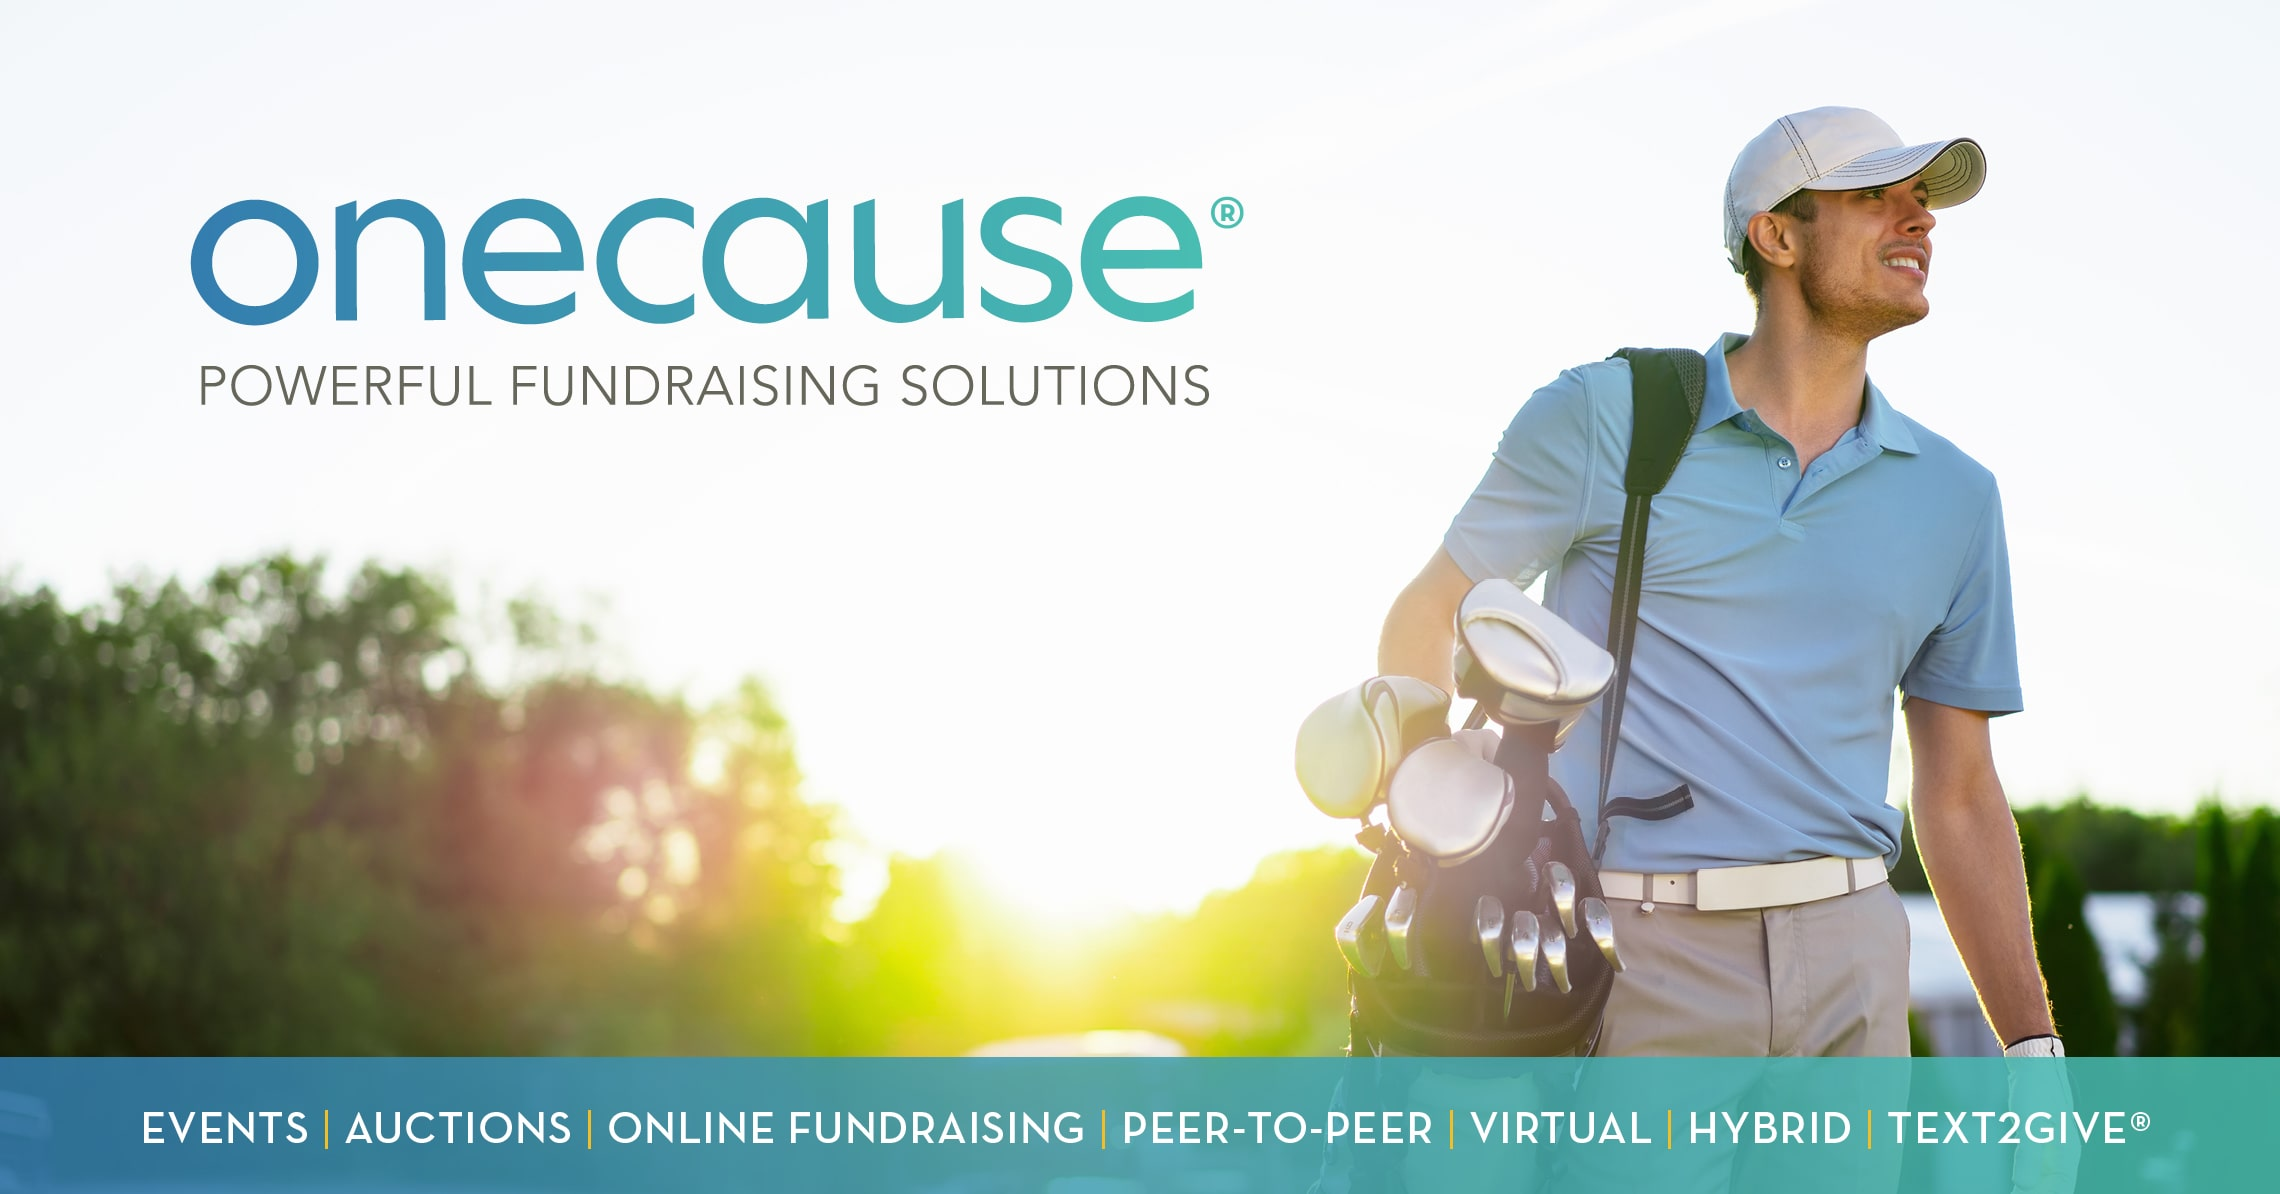 OneCause Powerful Fundraising Solutions